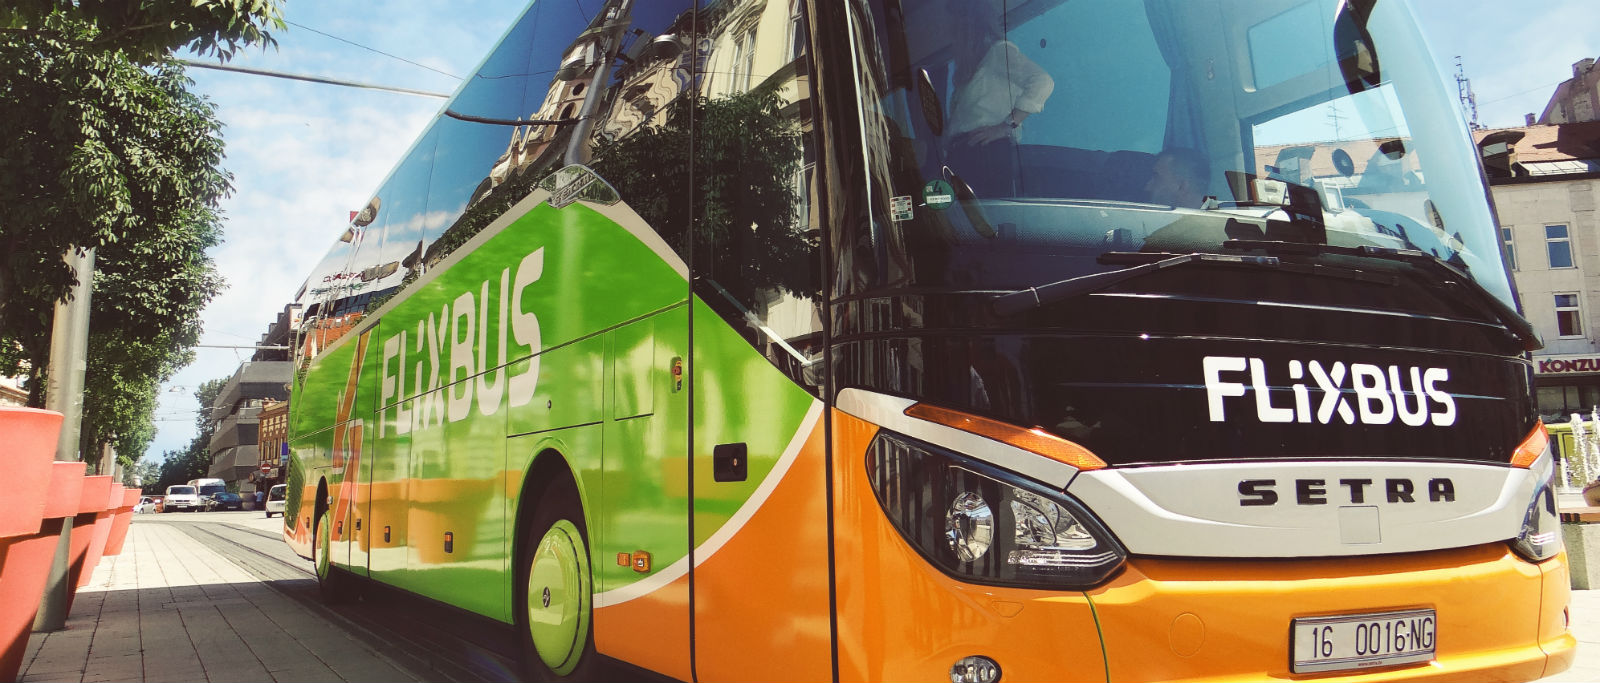 Paris Bourges Bus Cheap Bus Route Girona Canet En Roussillon From 4 99 Flixbus